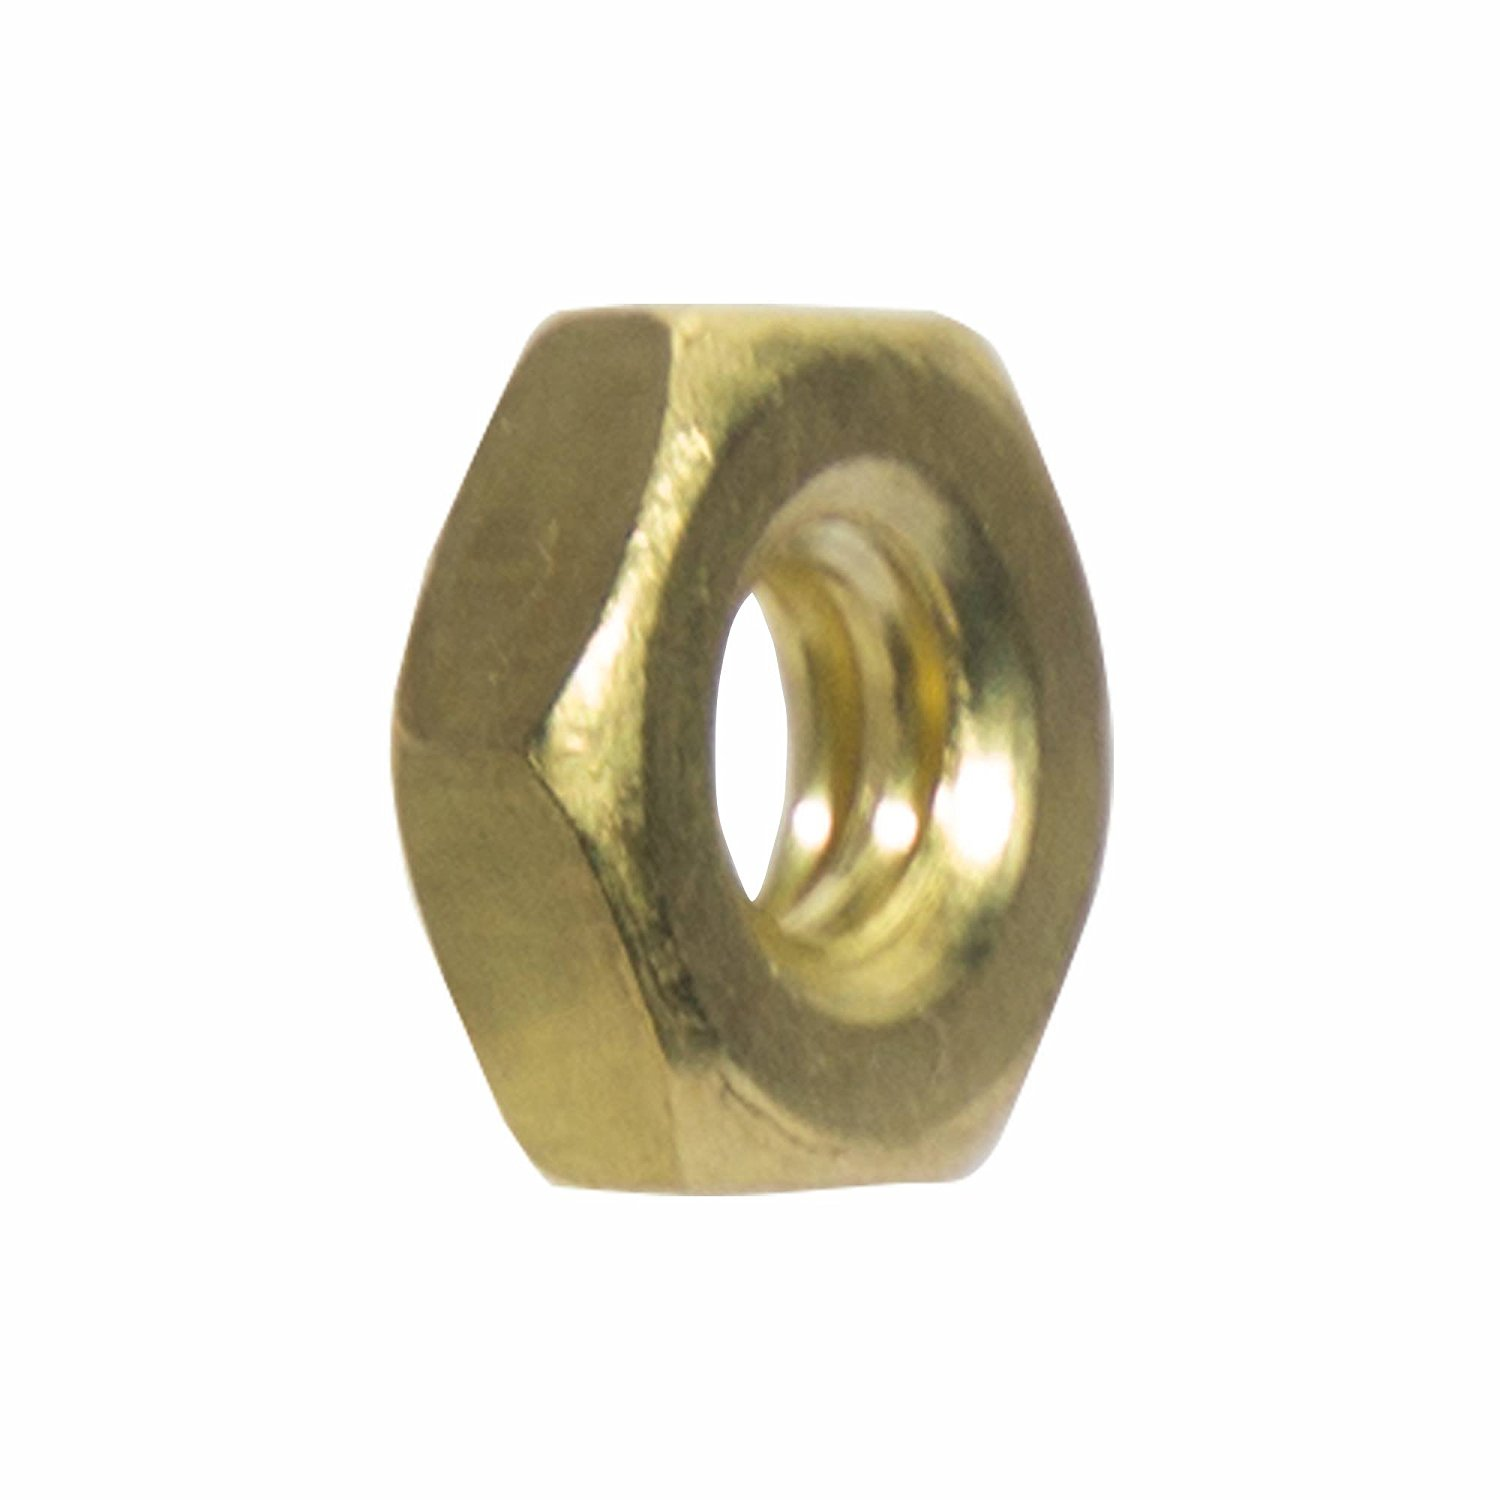 Machine Screw Hex Nuts Solid Brass Commercial Grade 360 All Sizes and Quantities